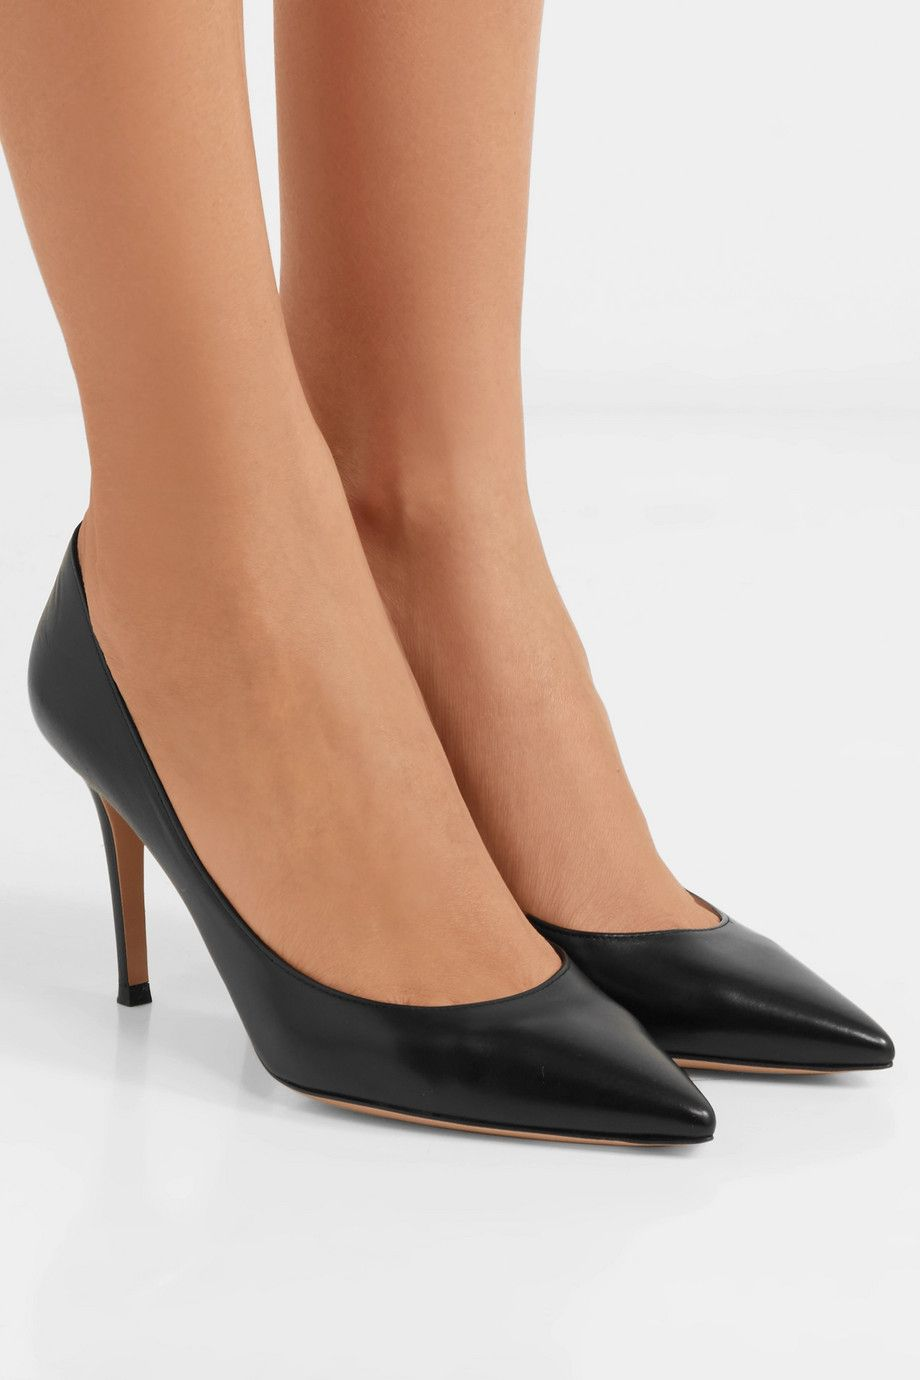 Casual shoes women, Leather pumps